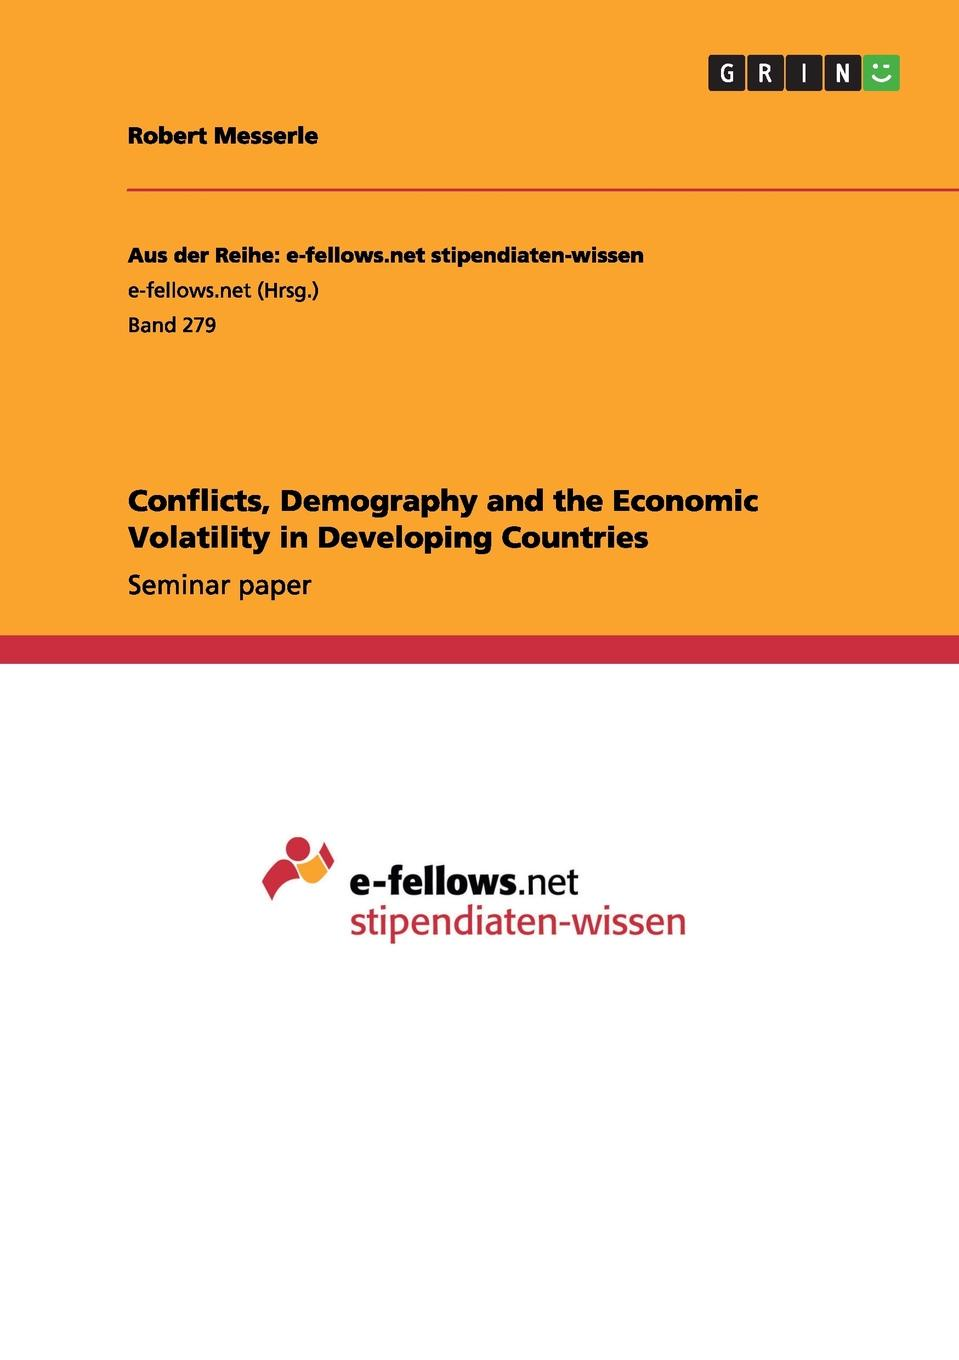 Robert Messerle Conflicts, Demography and the Economic Volatility in Developing Countries escentric molecules wallpaper paper passion